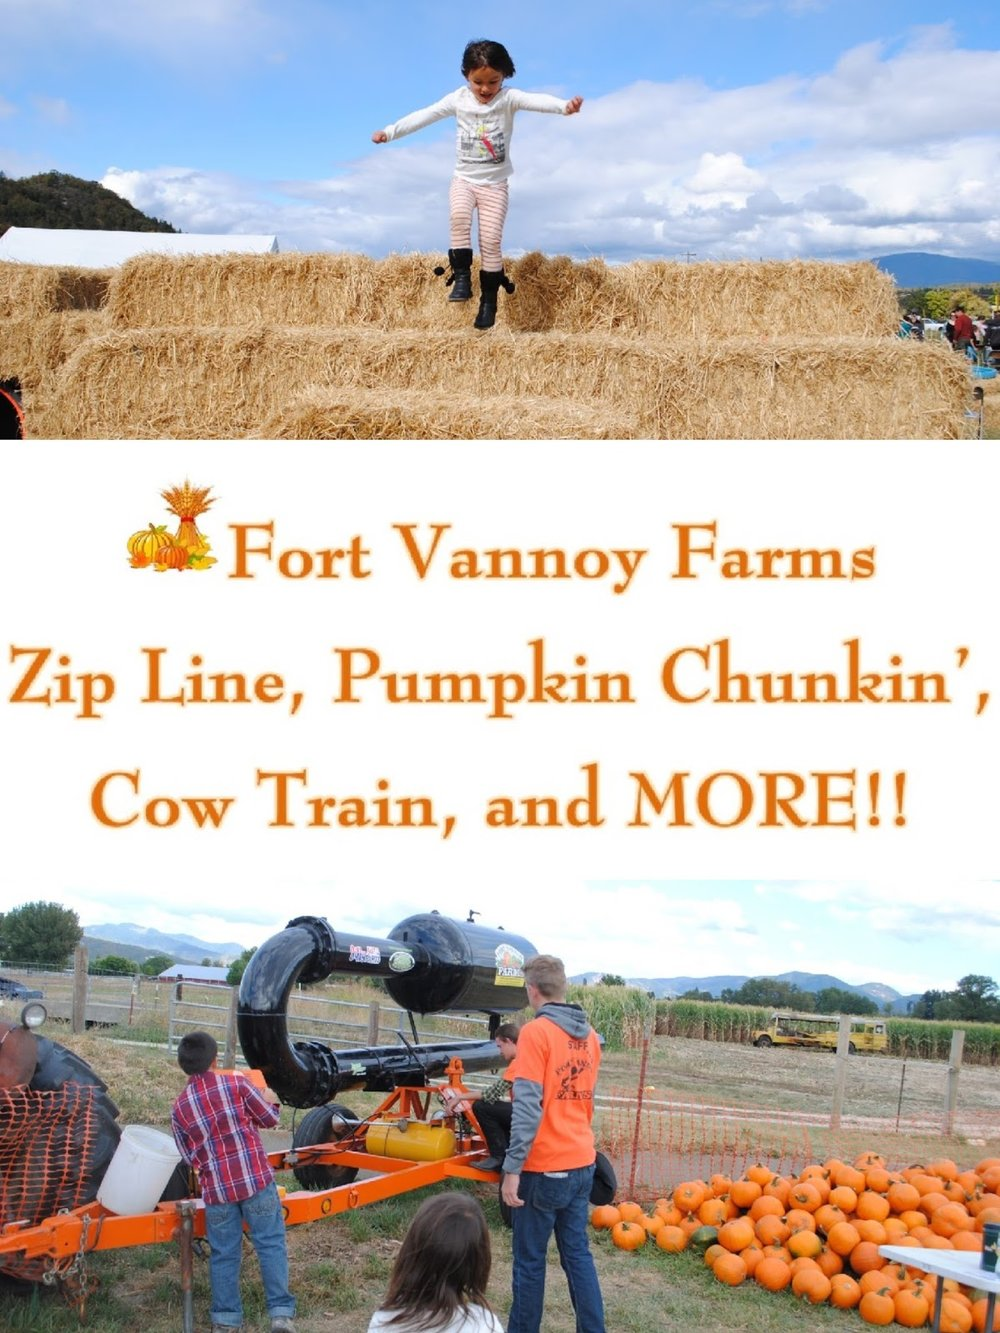 Fort Vannoy Farms Collage.jpeg